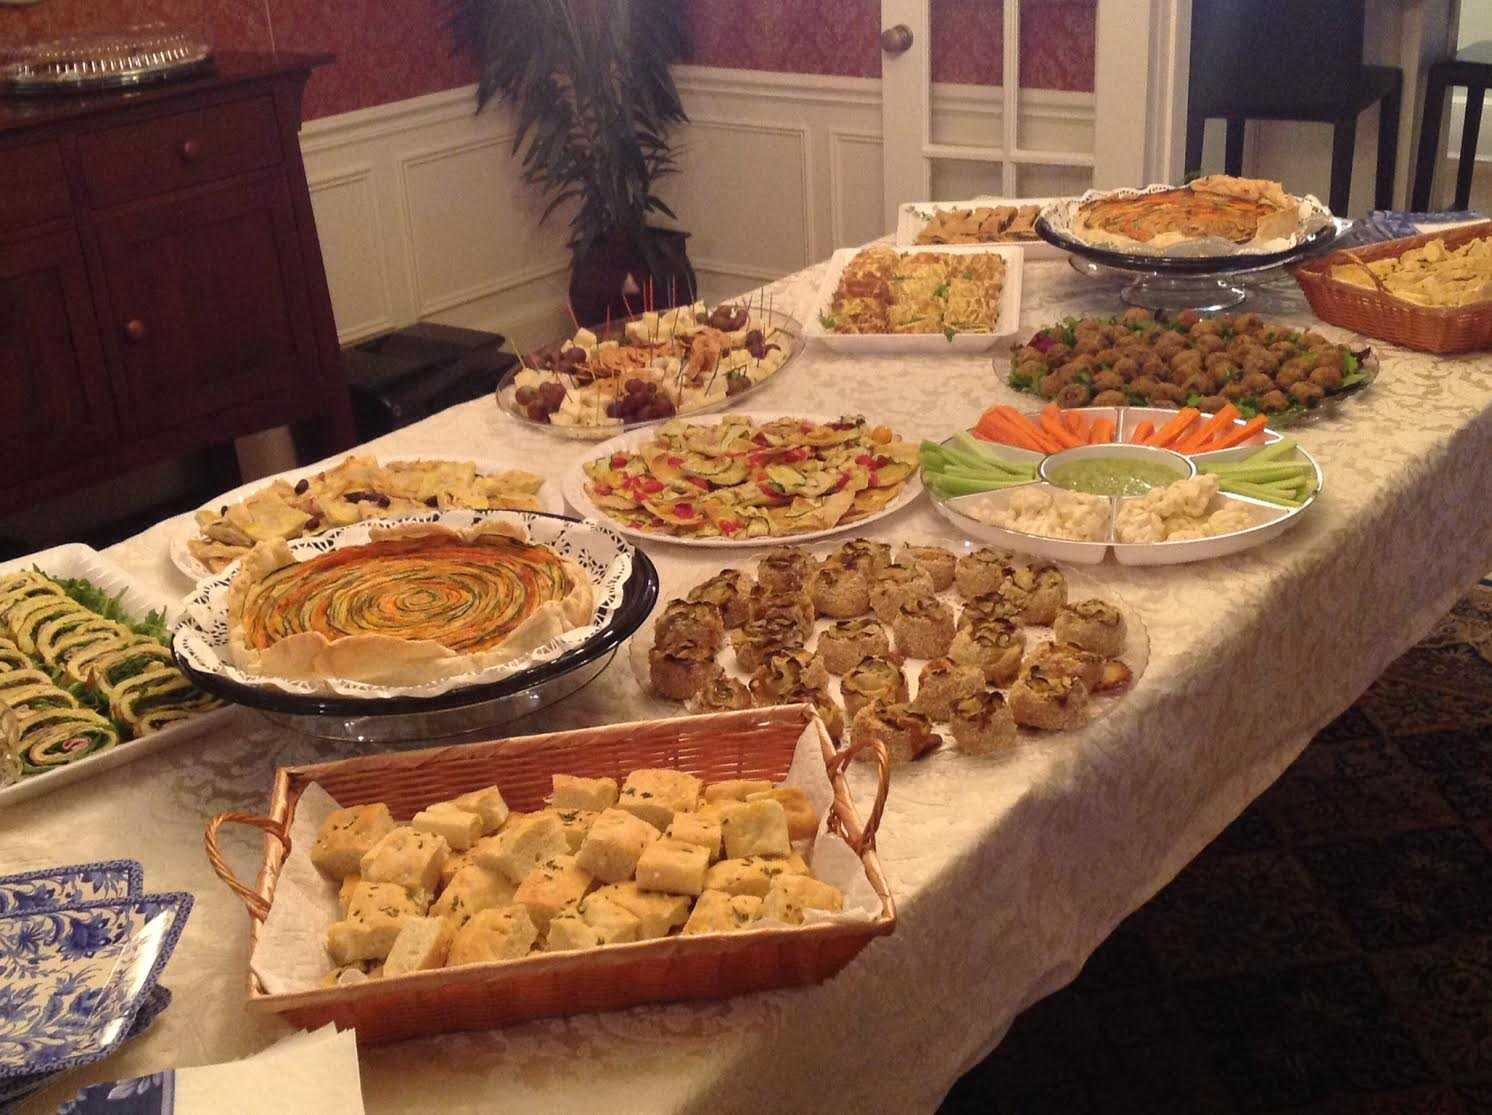 Catering by From Scratch in Ridgwood New Jersey.